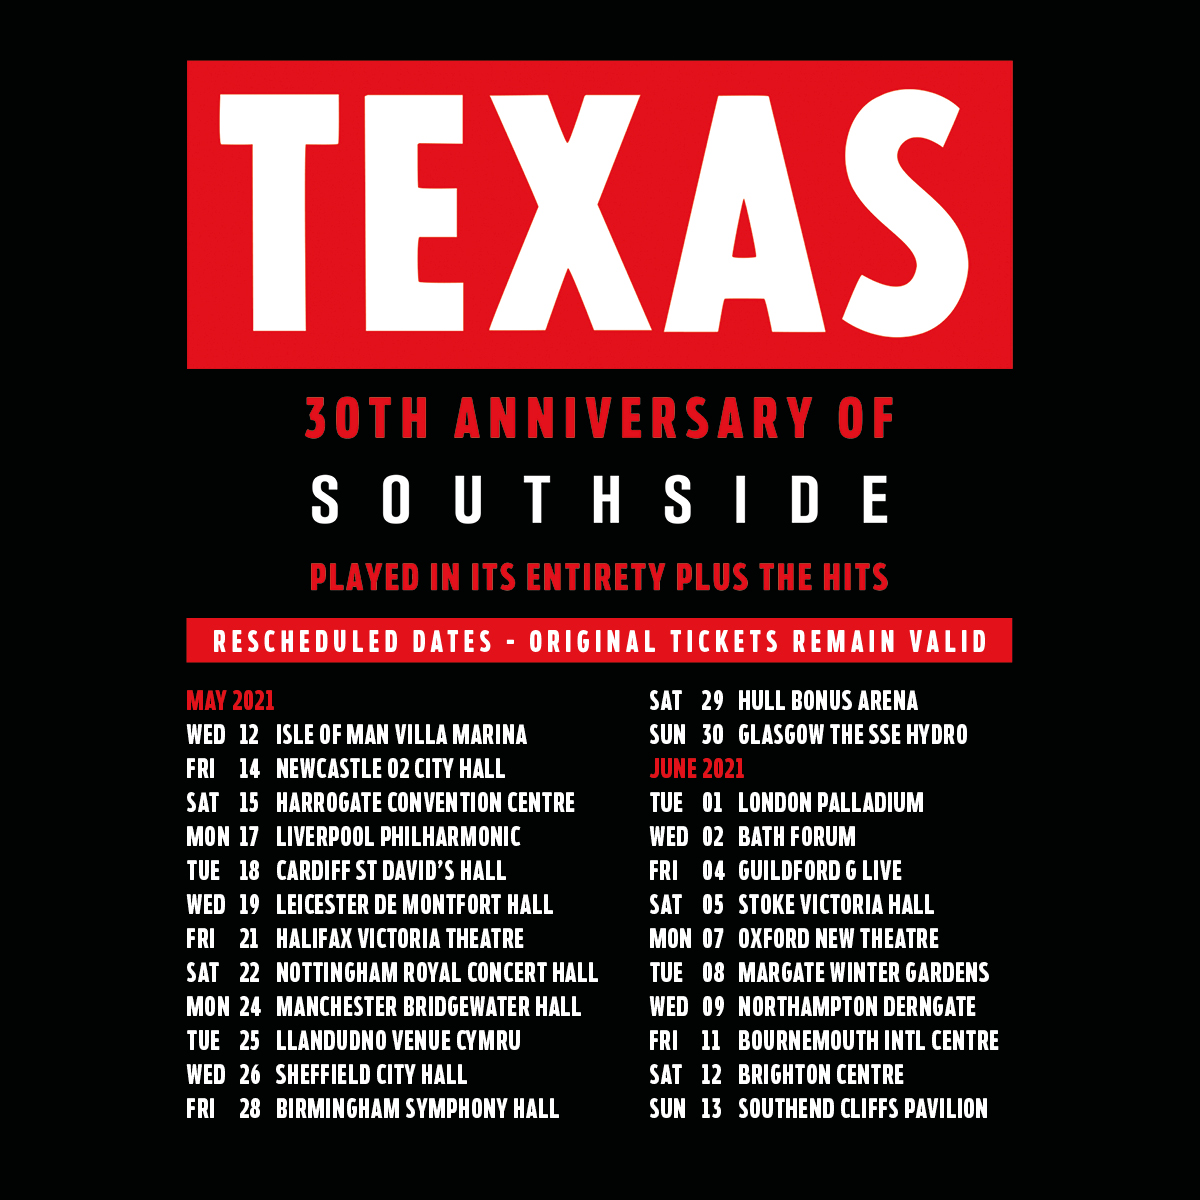 Scottish pop rock band Texas have rescheduled their 30th anniversary of Southside UK tour to May & Jun 2021. See them in #Newcastle #Harrogate #Liverpool #Cardiff #Leicester #Halifax #Nottingham #Manchester & more  🎟️